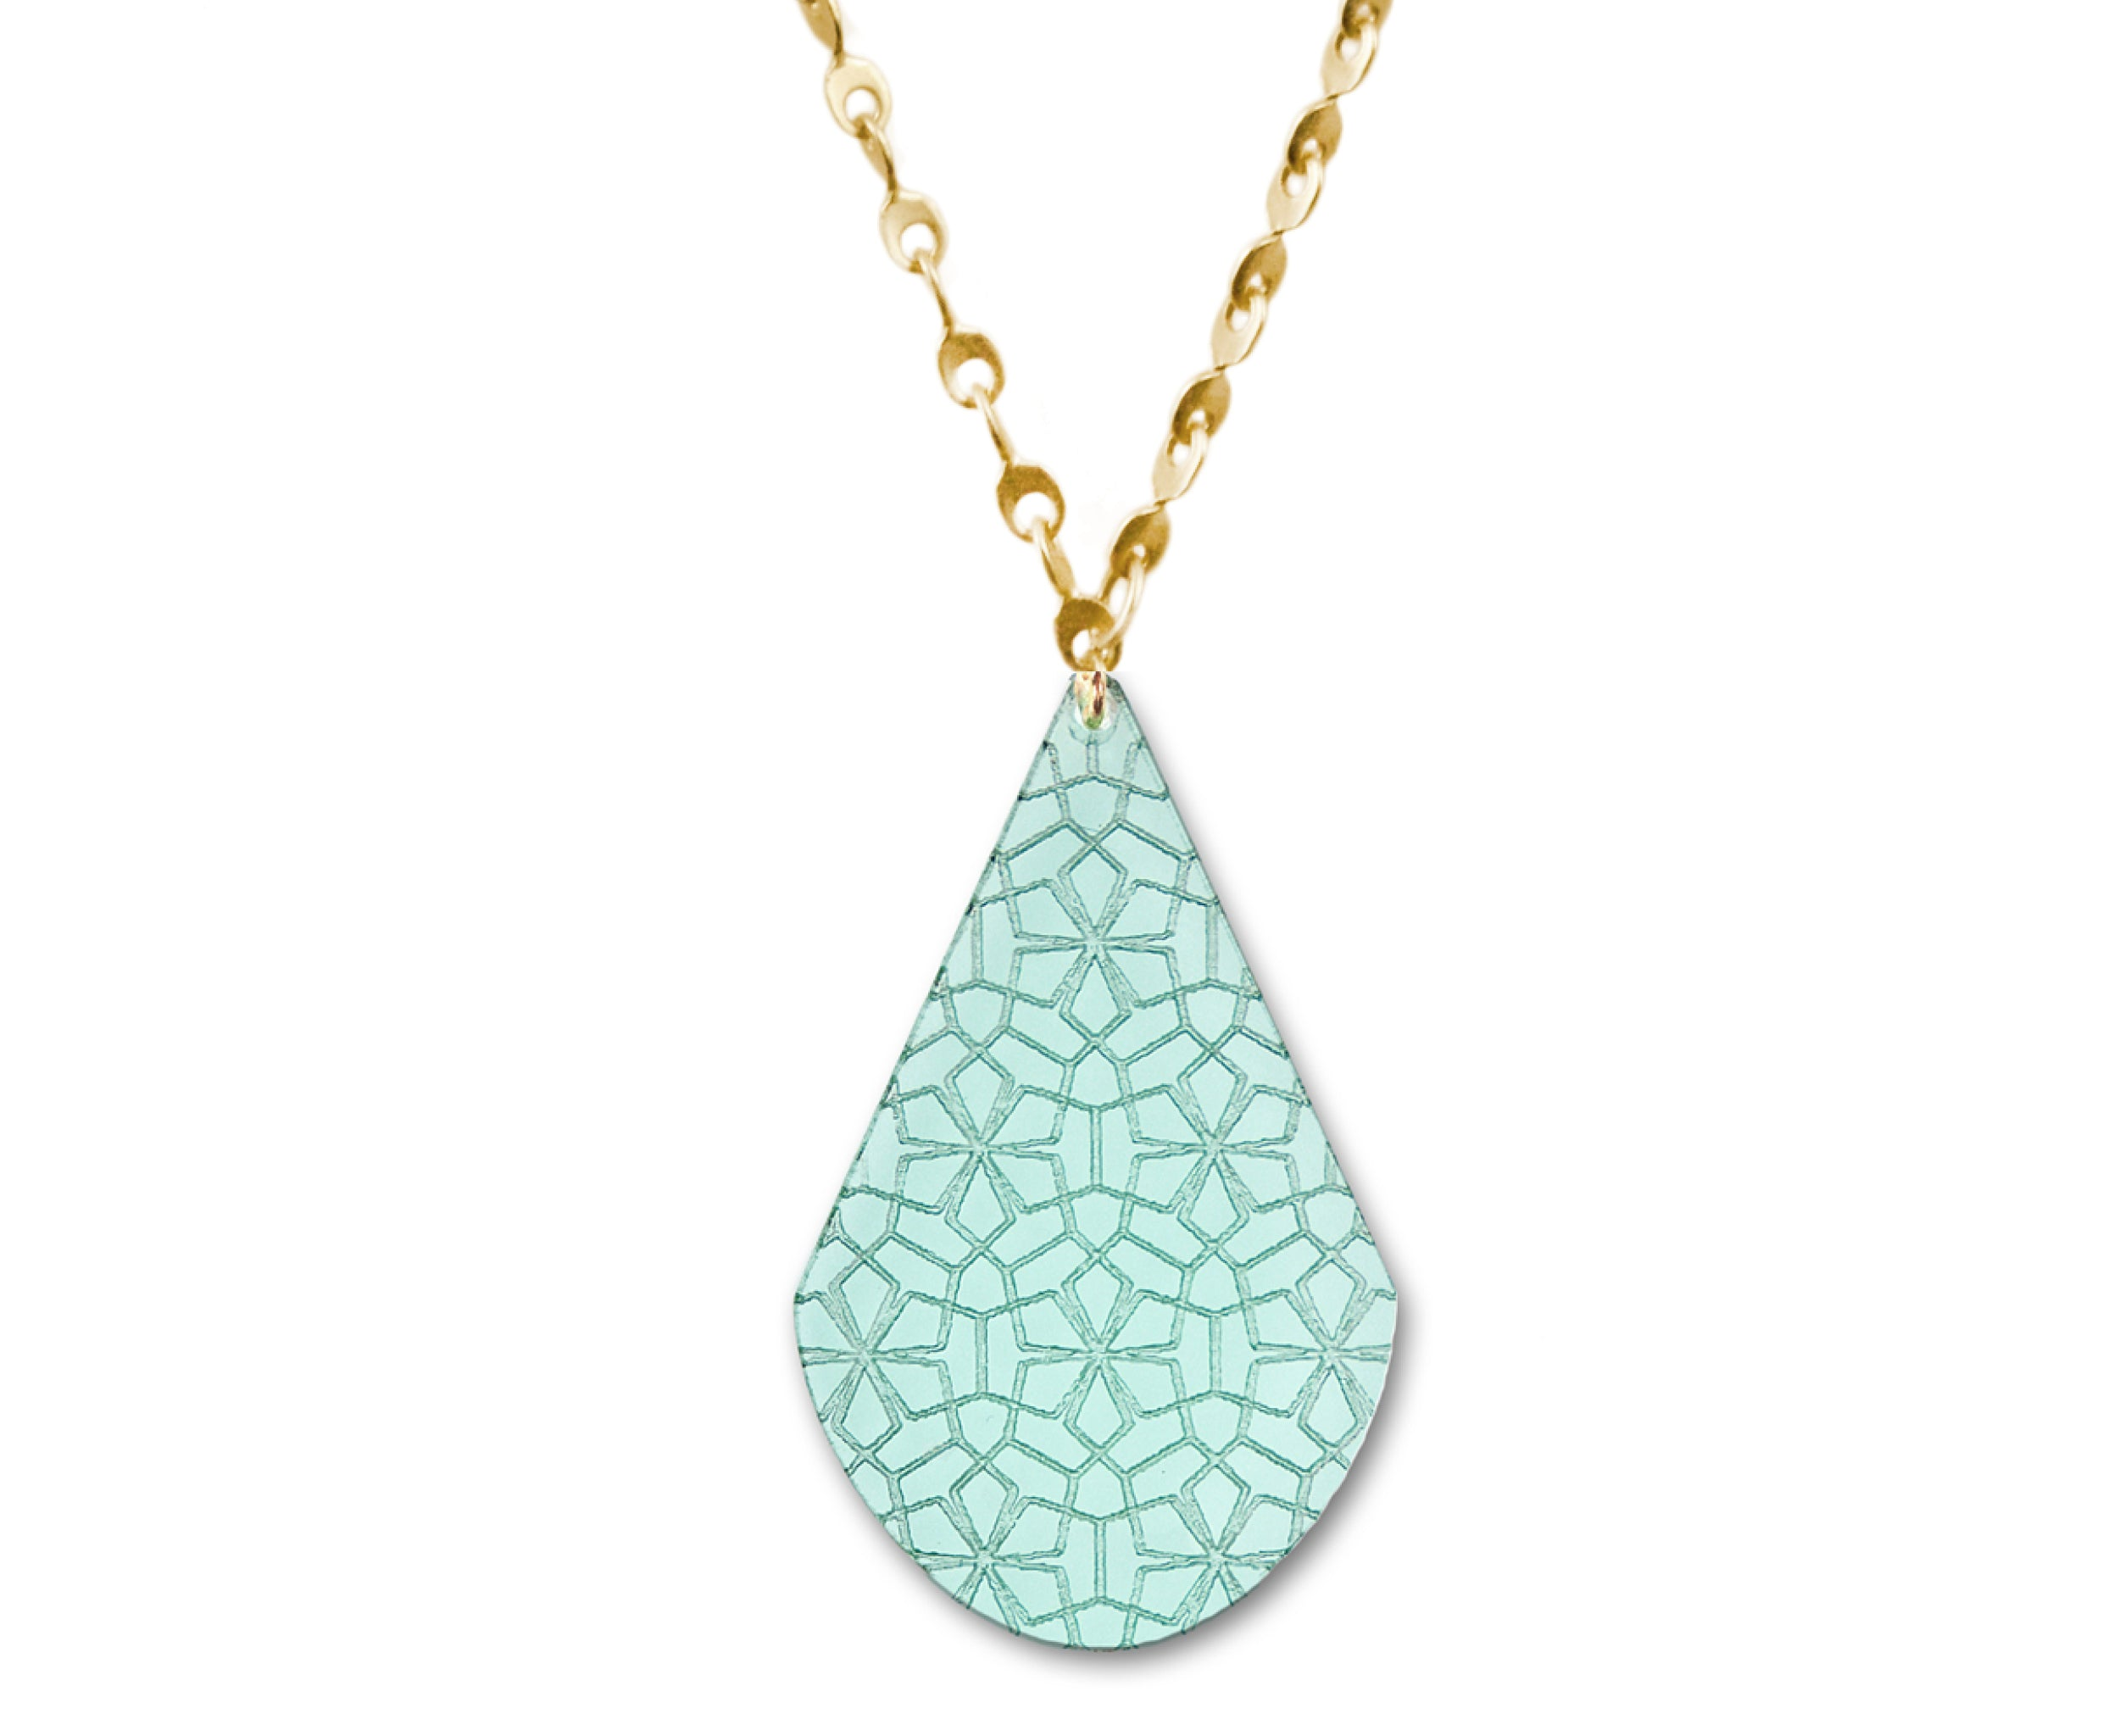 Glass Eyelet Chain Necklace with Etched Pendant